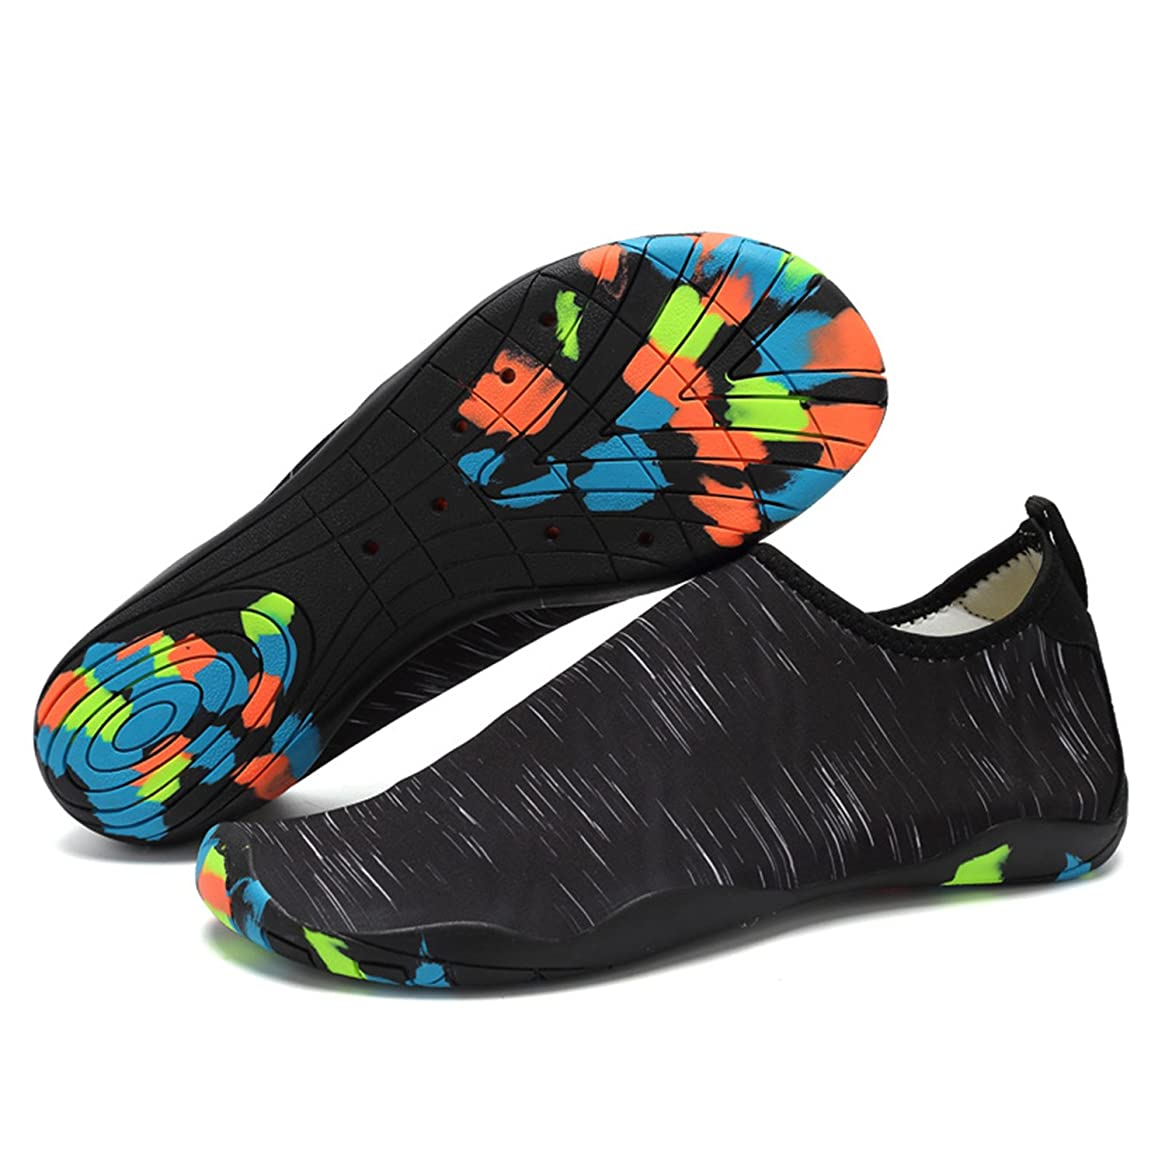 xylxyl Mutifunctional Water Shoes, Lightweight Flexible Quick Dry Aqua Socks for Men and Women